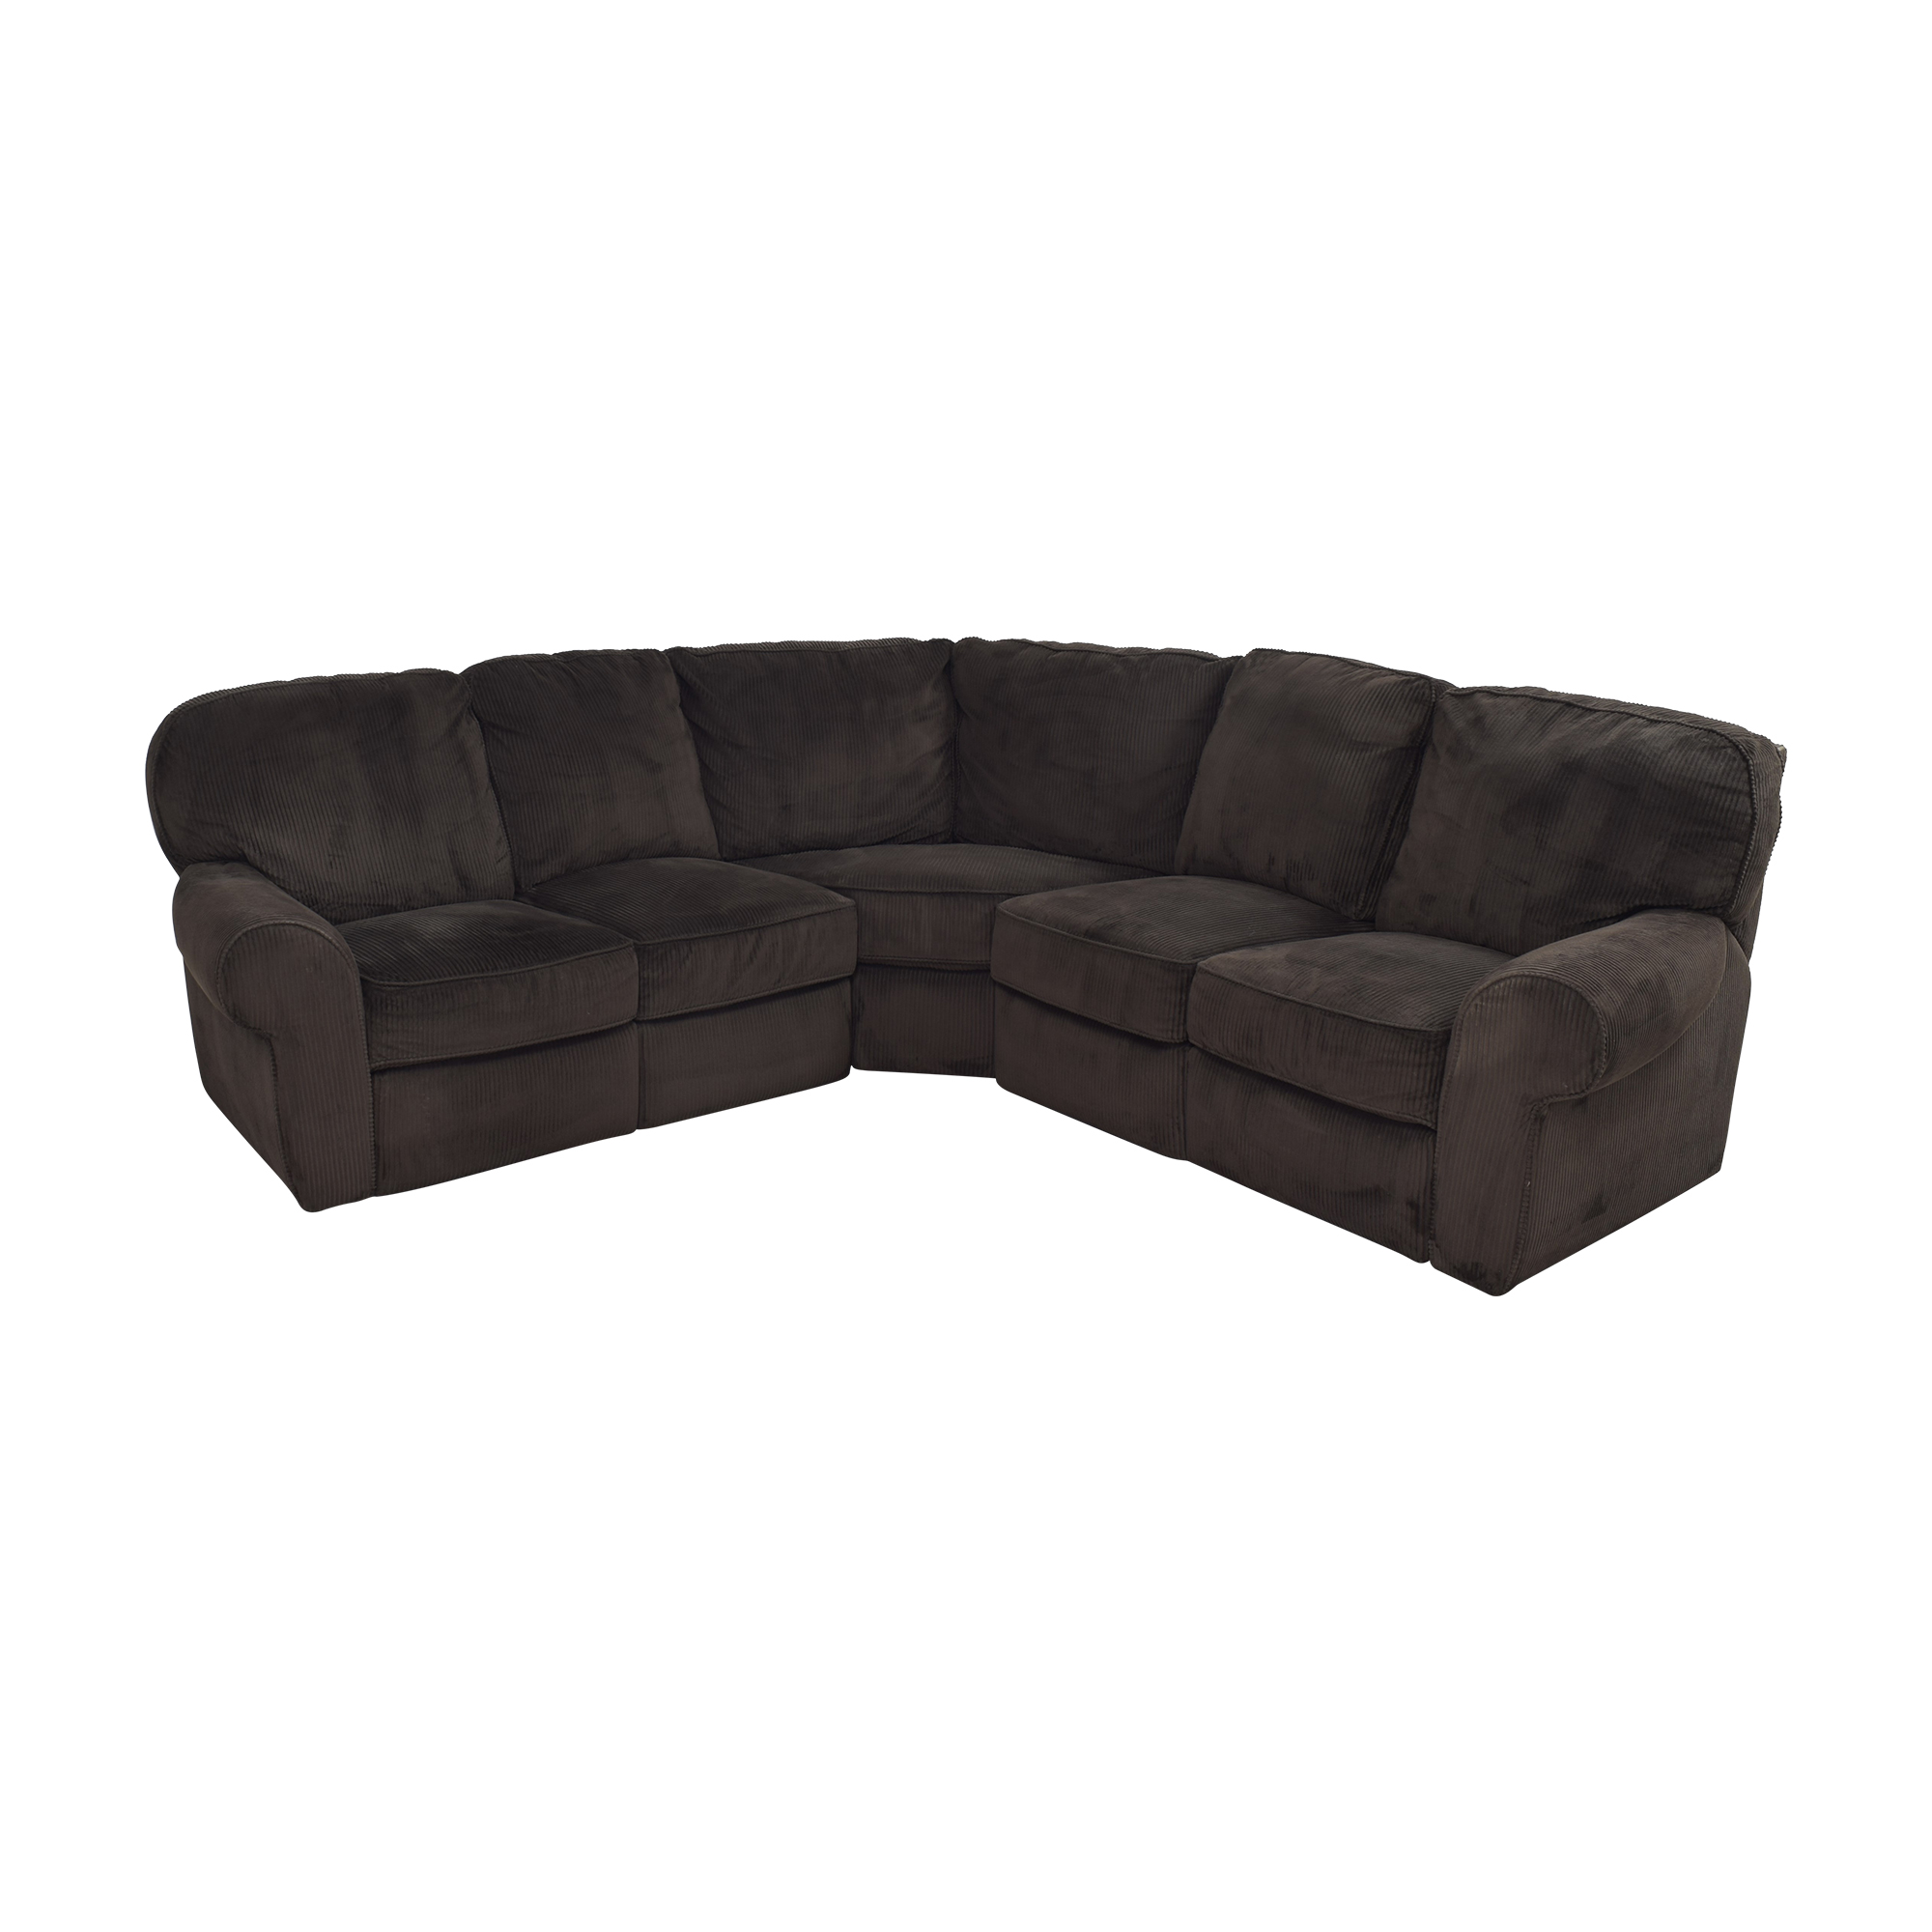 Lane Furniture Lane Furniture Megan Three Piece Reclining Sectional used